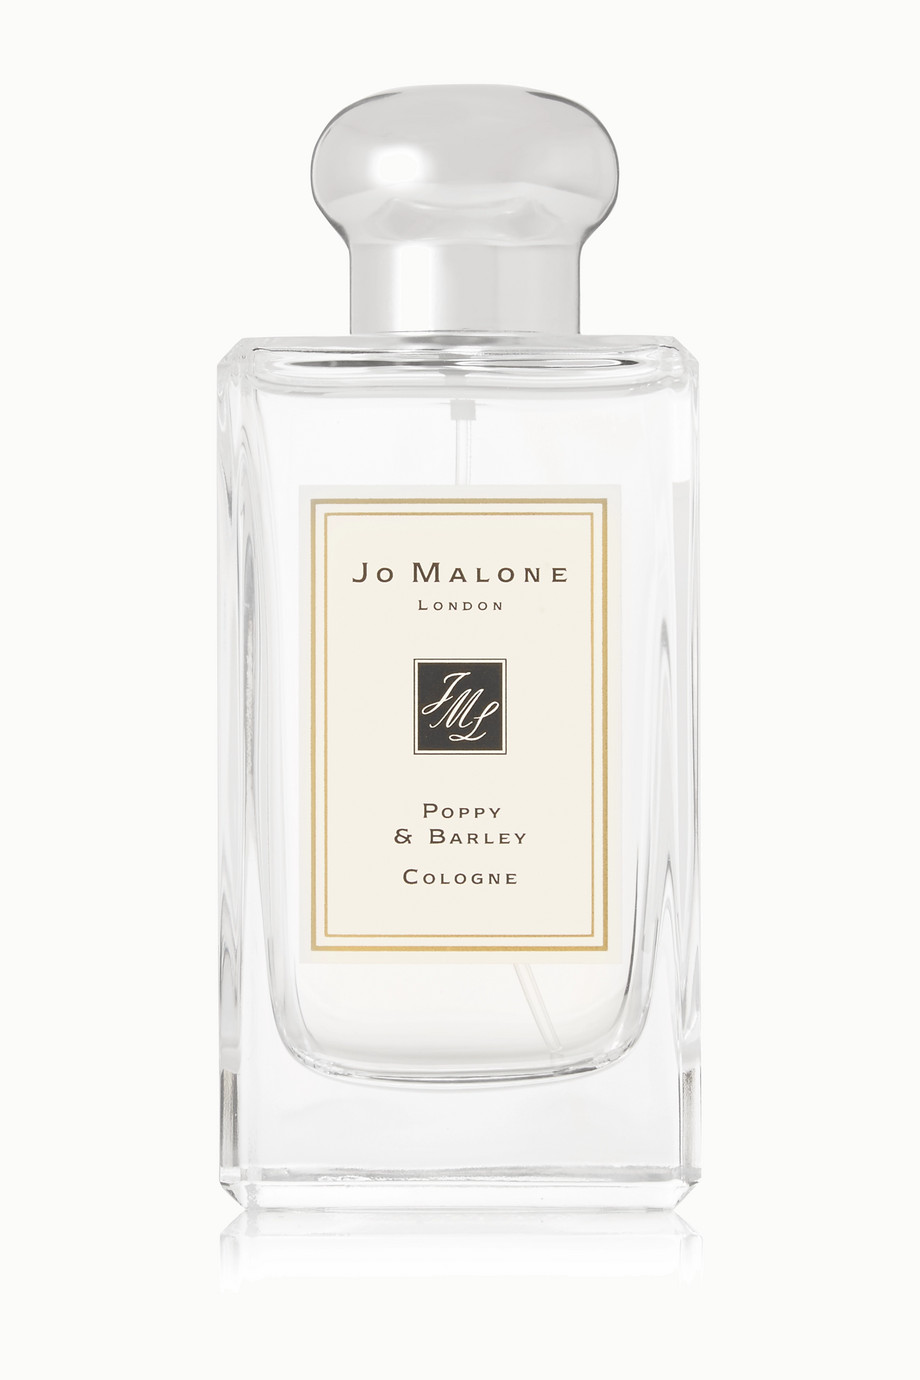 Jo Malone London Poppy & Barley Cologne, 100ml